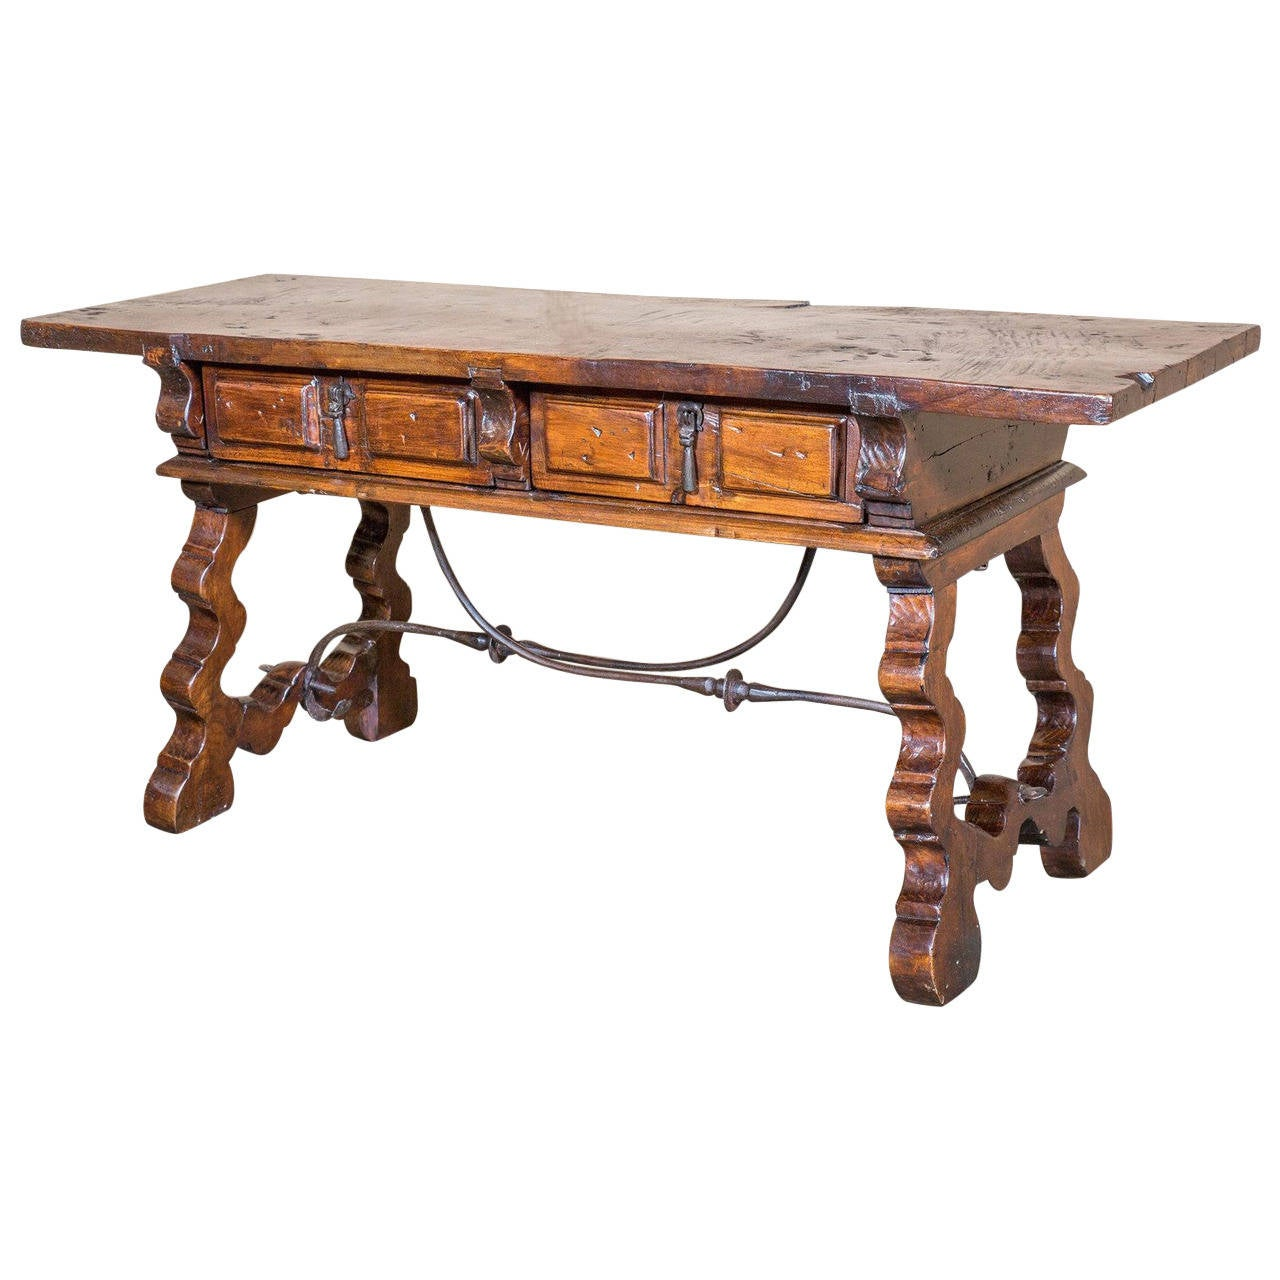 18th century spanish coffee table at 1stdibs for Table in spanish